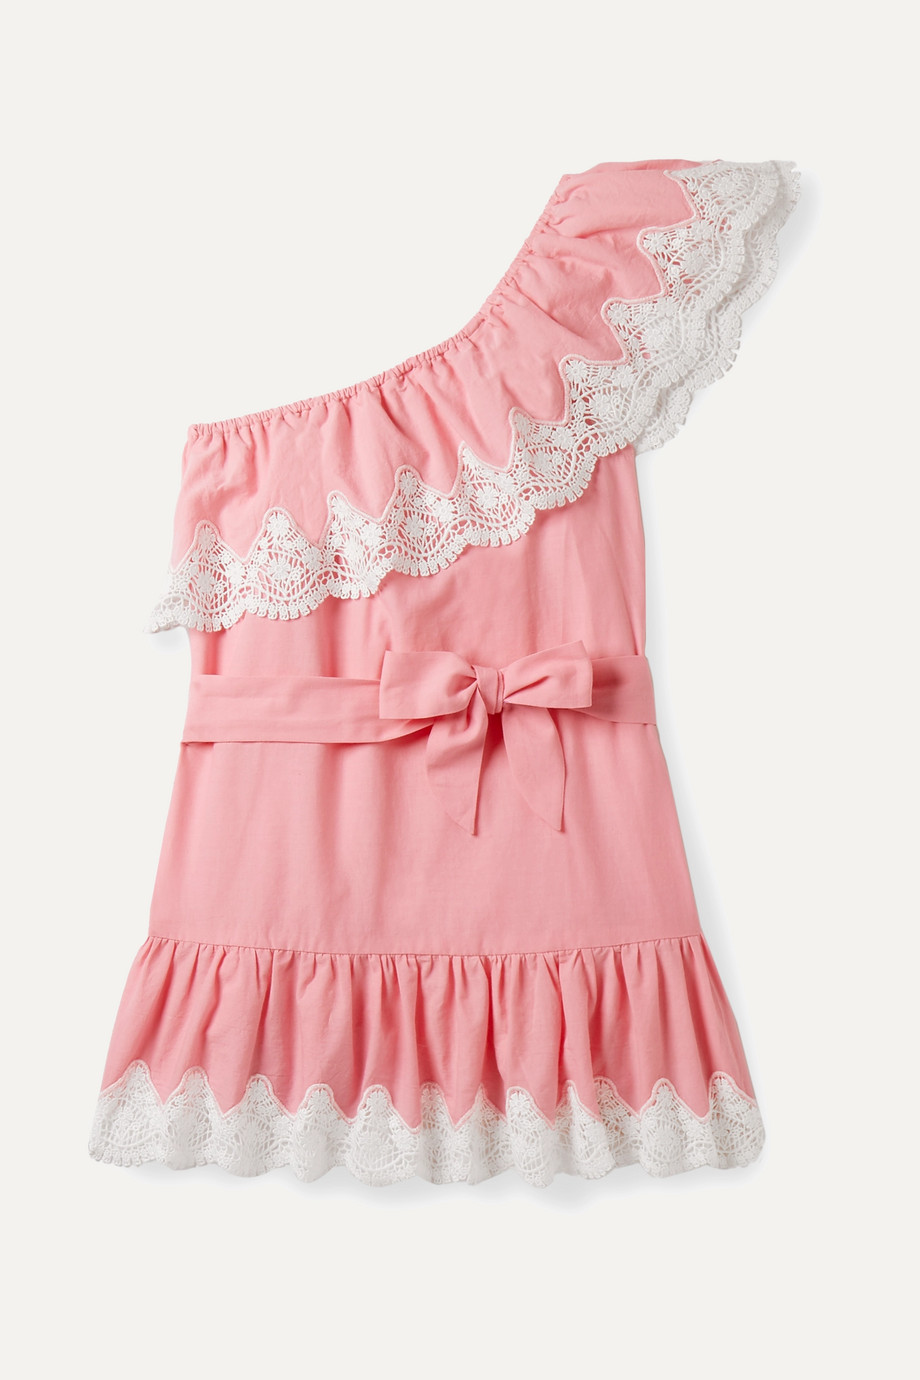 Miguelina Kids Ages 4 - 12 Summer one-shoulder crocheted cotton dress